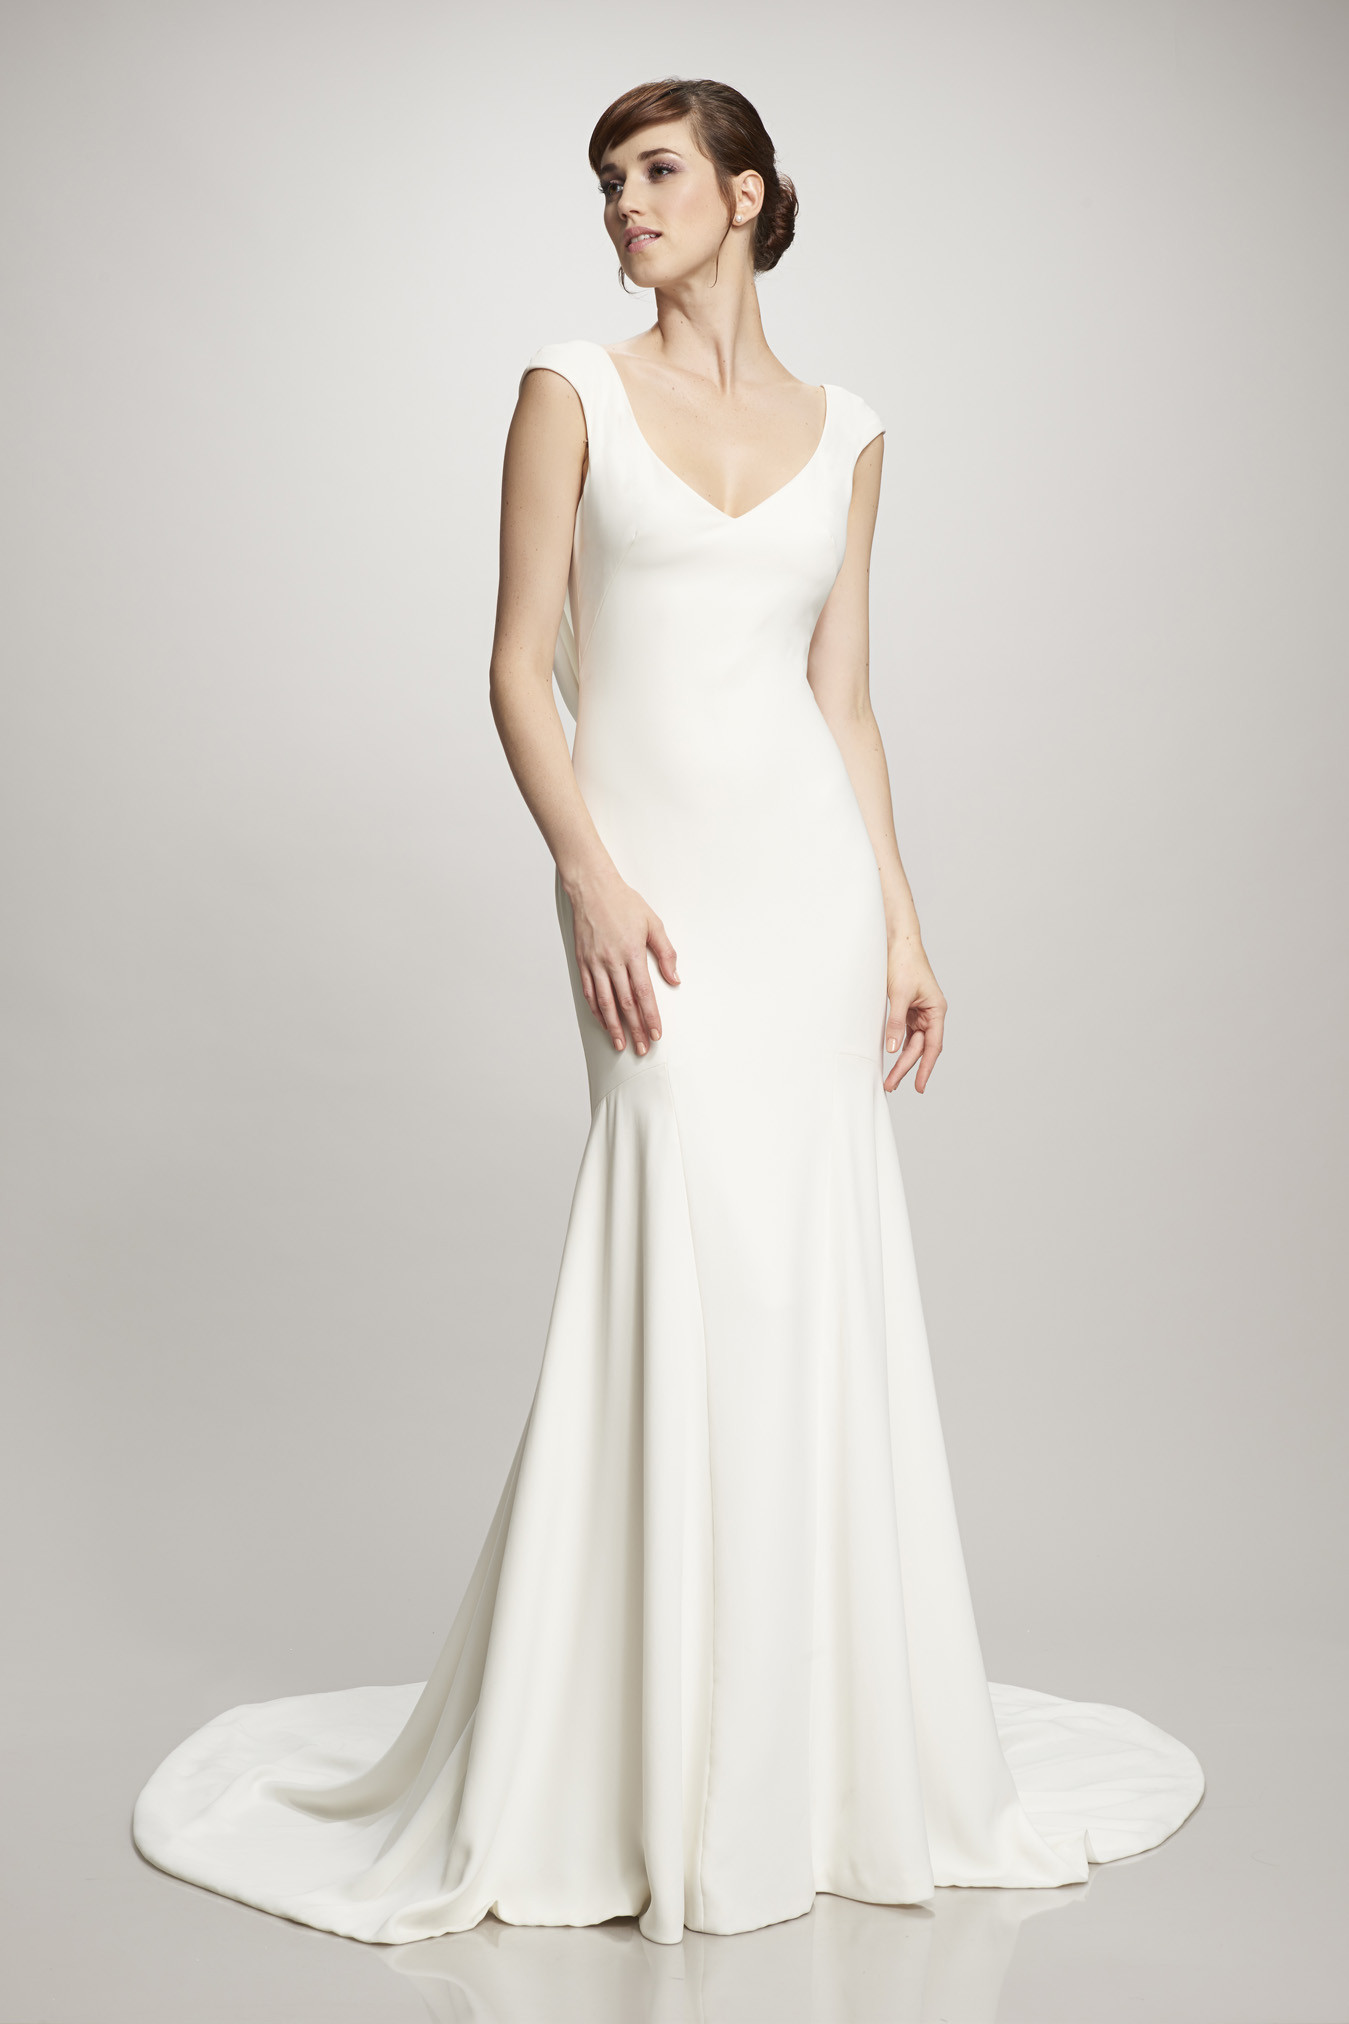 What We're Loving: Clean & Simple Wedding Gown Trend. Desktop Image